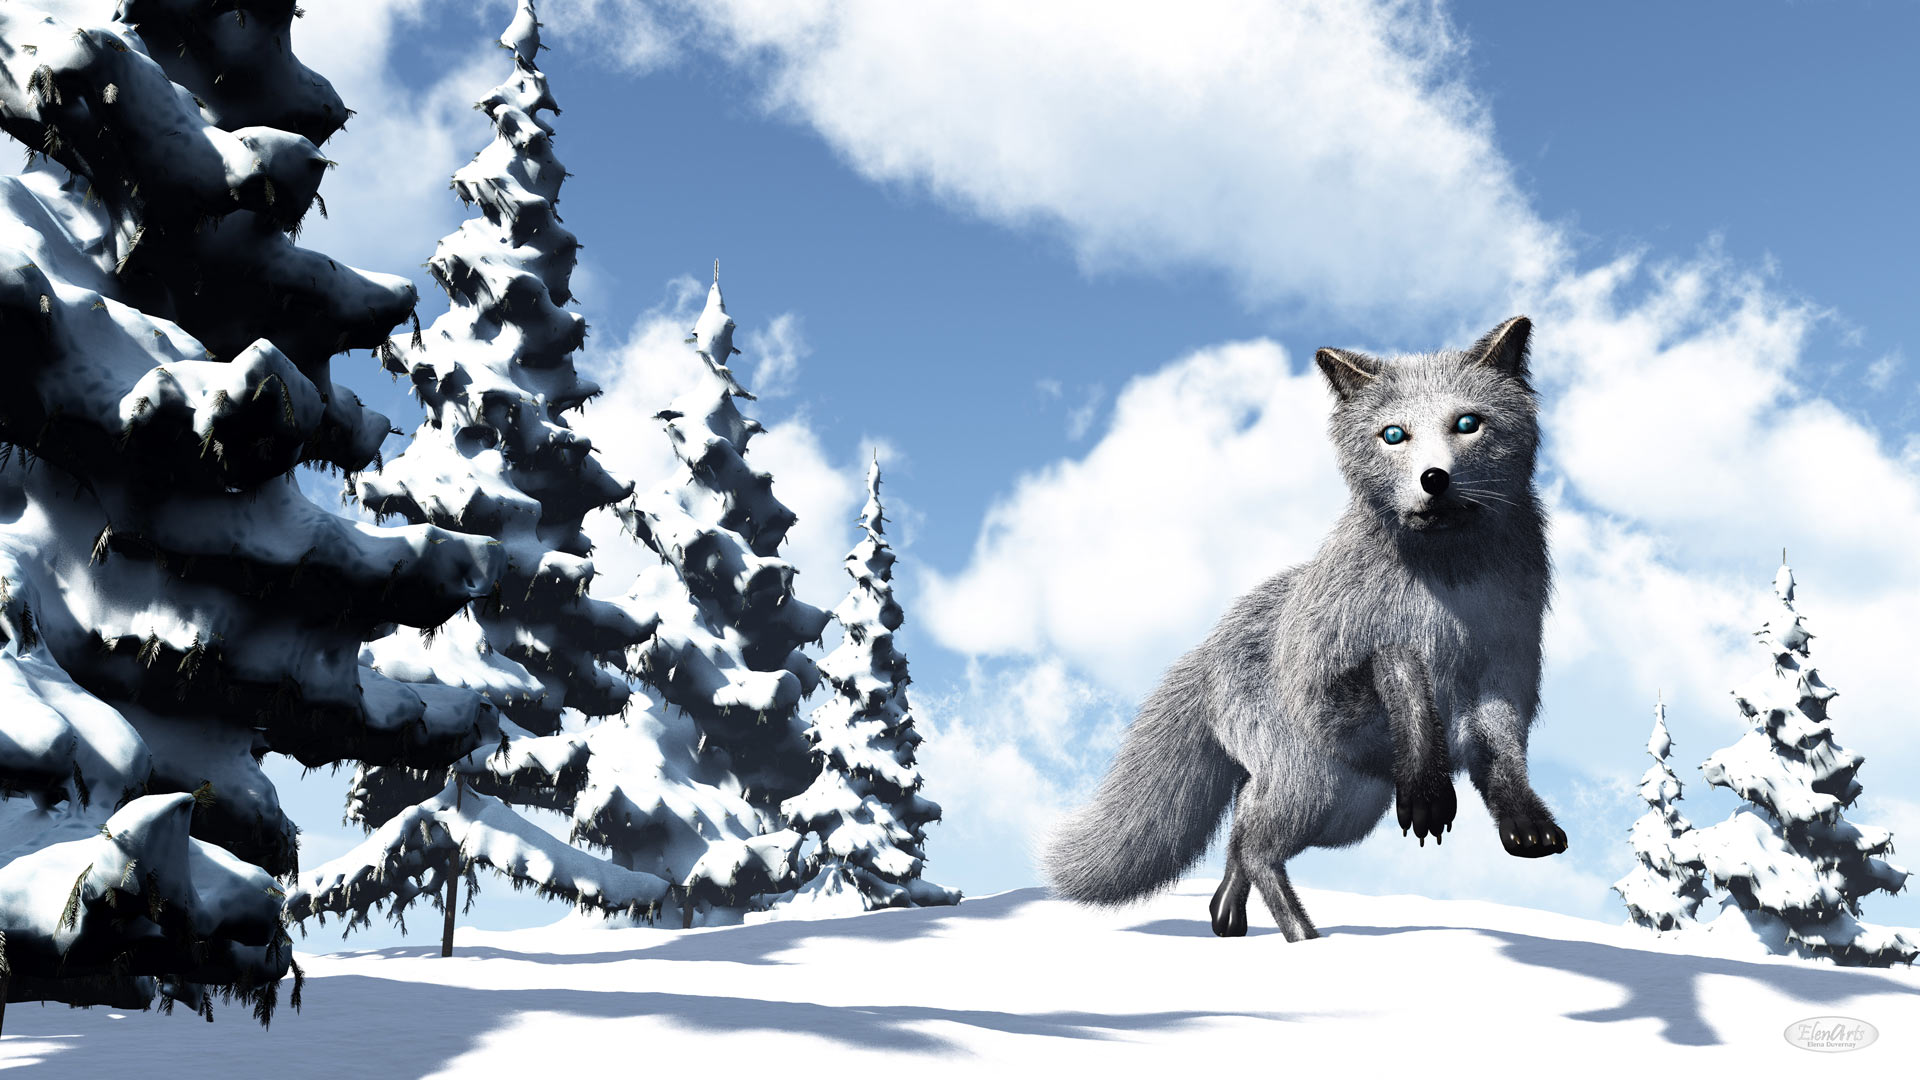 White fox in the mountain near fir trees by winter day - 3D render